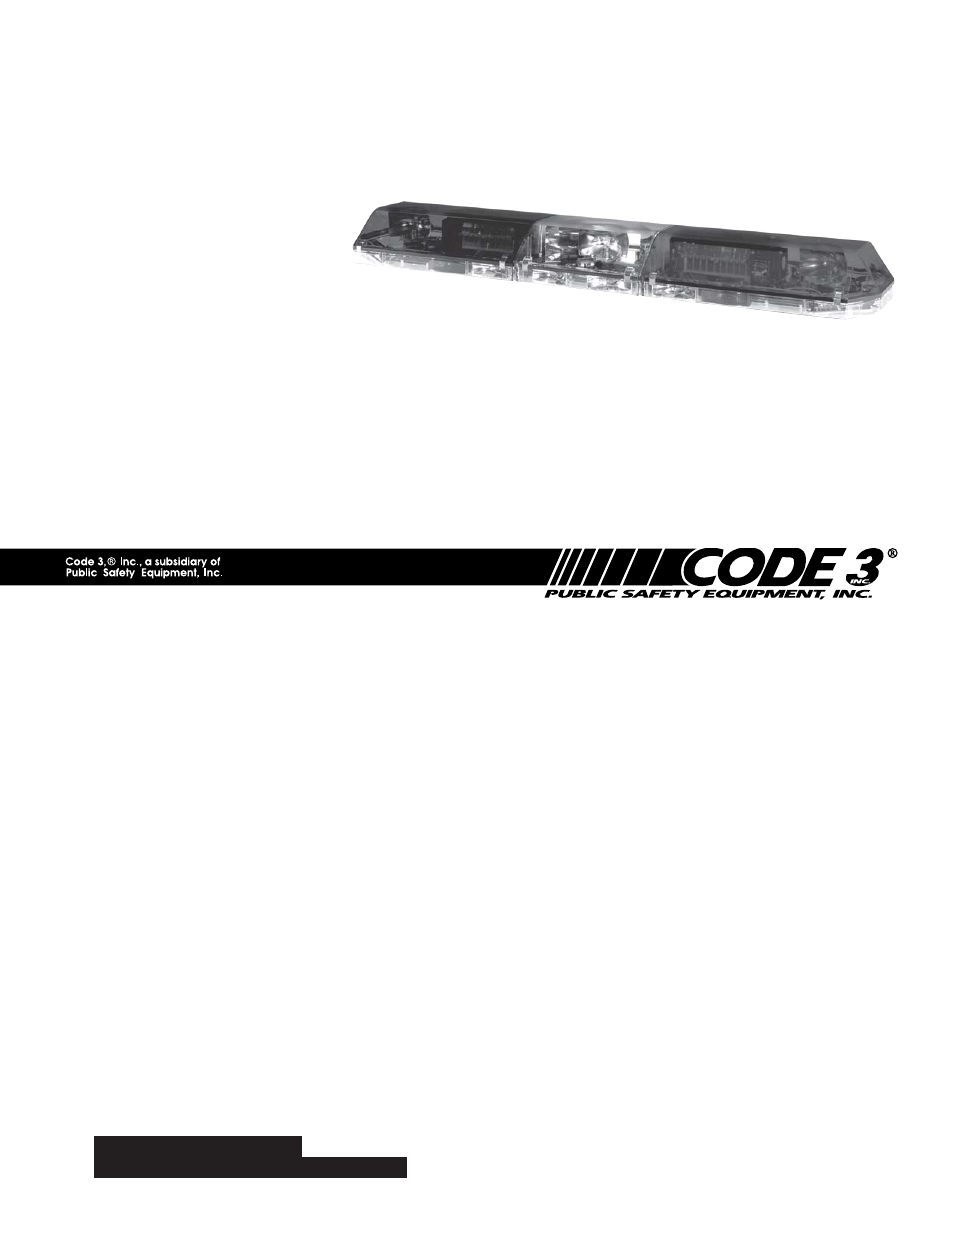 Wiring Diagram Database  Code 3 Excalibur Lightbar Wiring